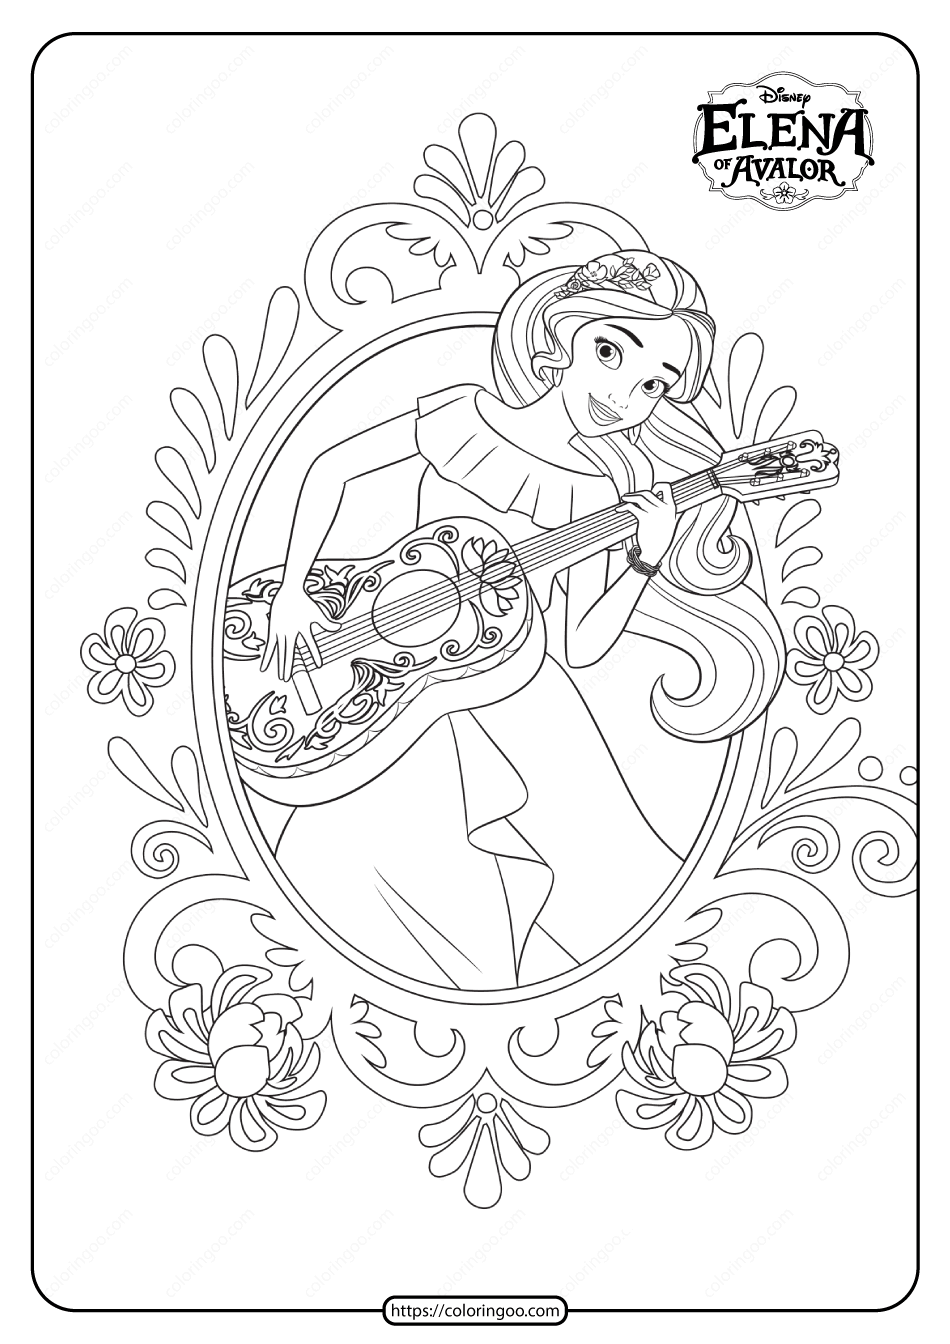 Princess Elena Of Avalor Pdf Coloring Book In 2020 Princess Elena Princess Elena Of Avalor Coloring Books